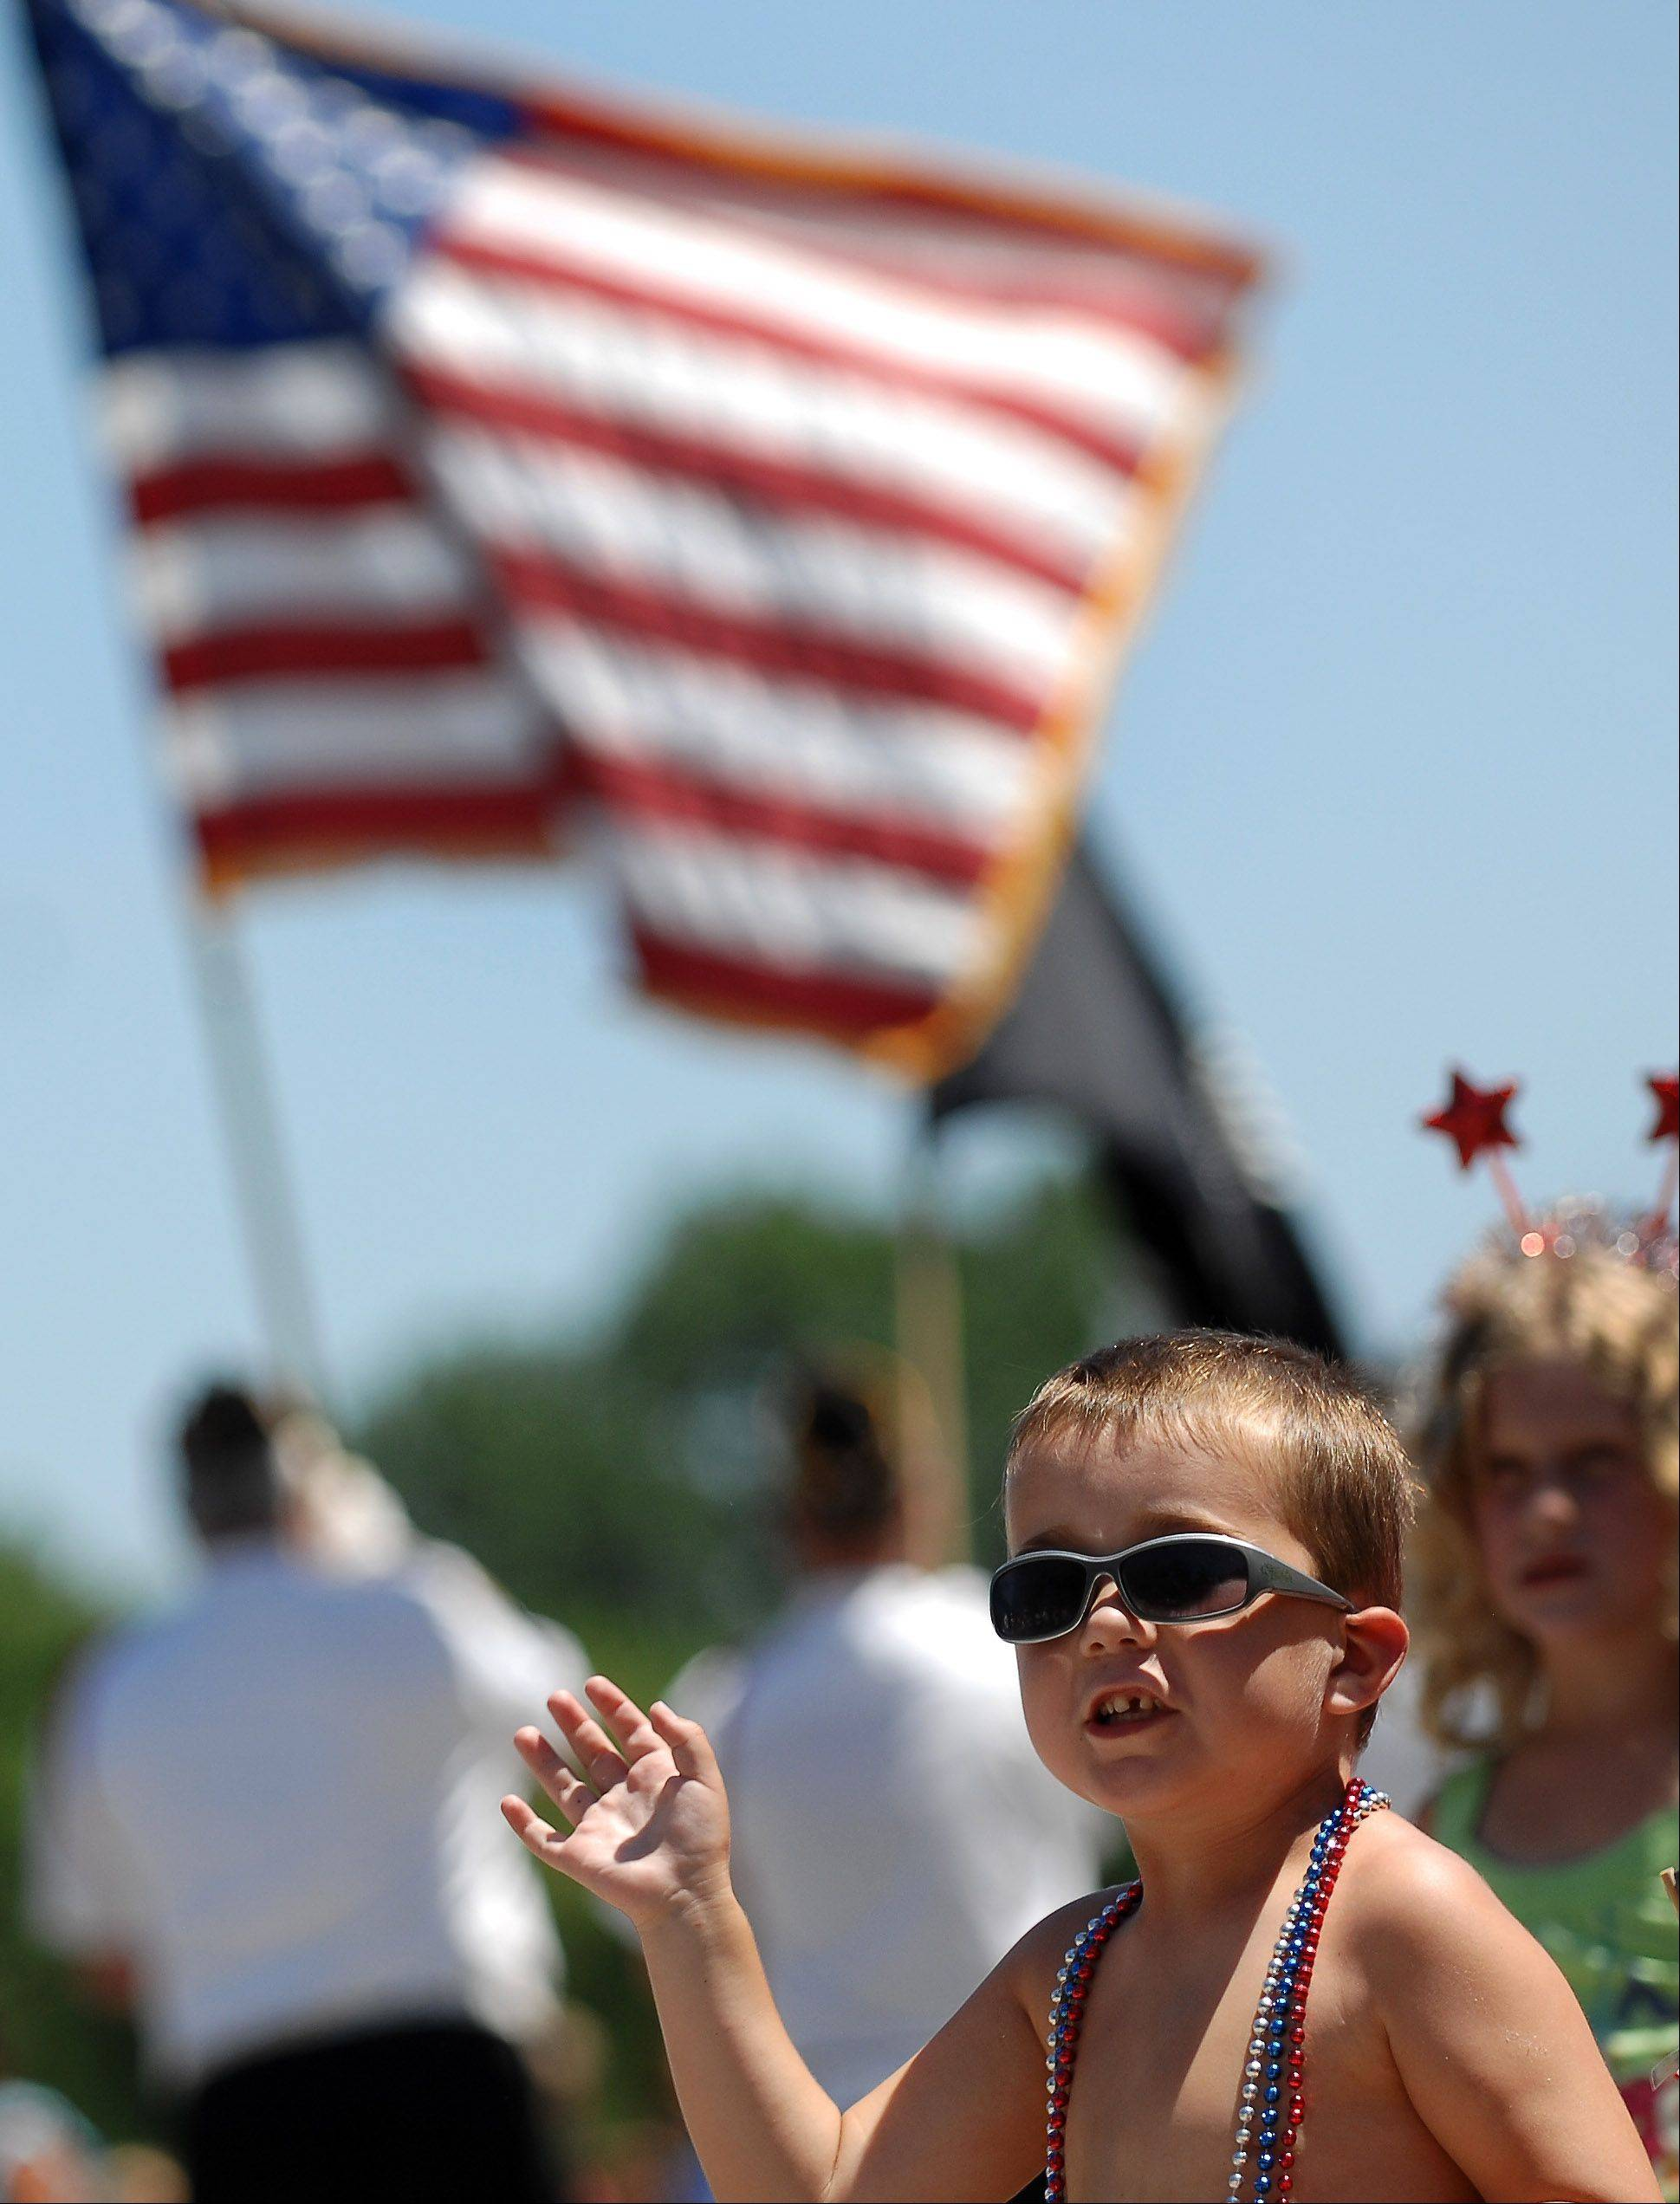 5-year-old Jake Kenefick of West Dundee waves to a police car as it passes during Sleepy Hollow's Fourth of July parade Monday.